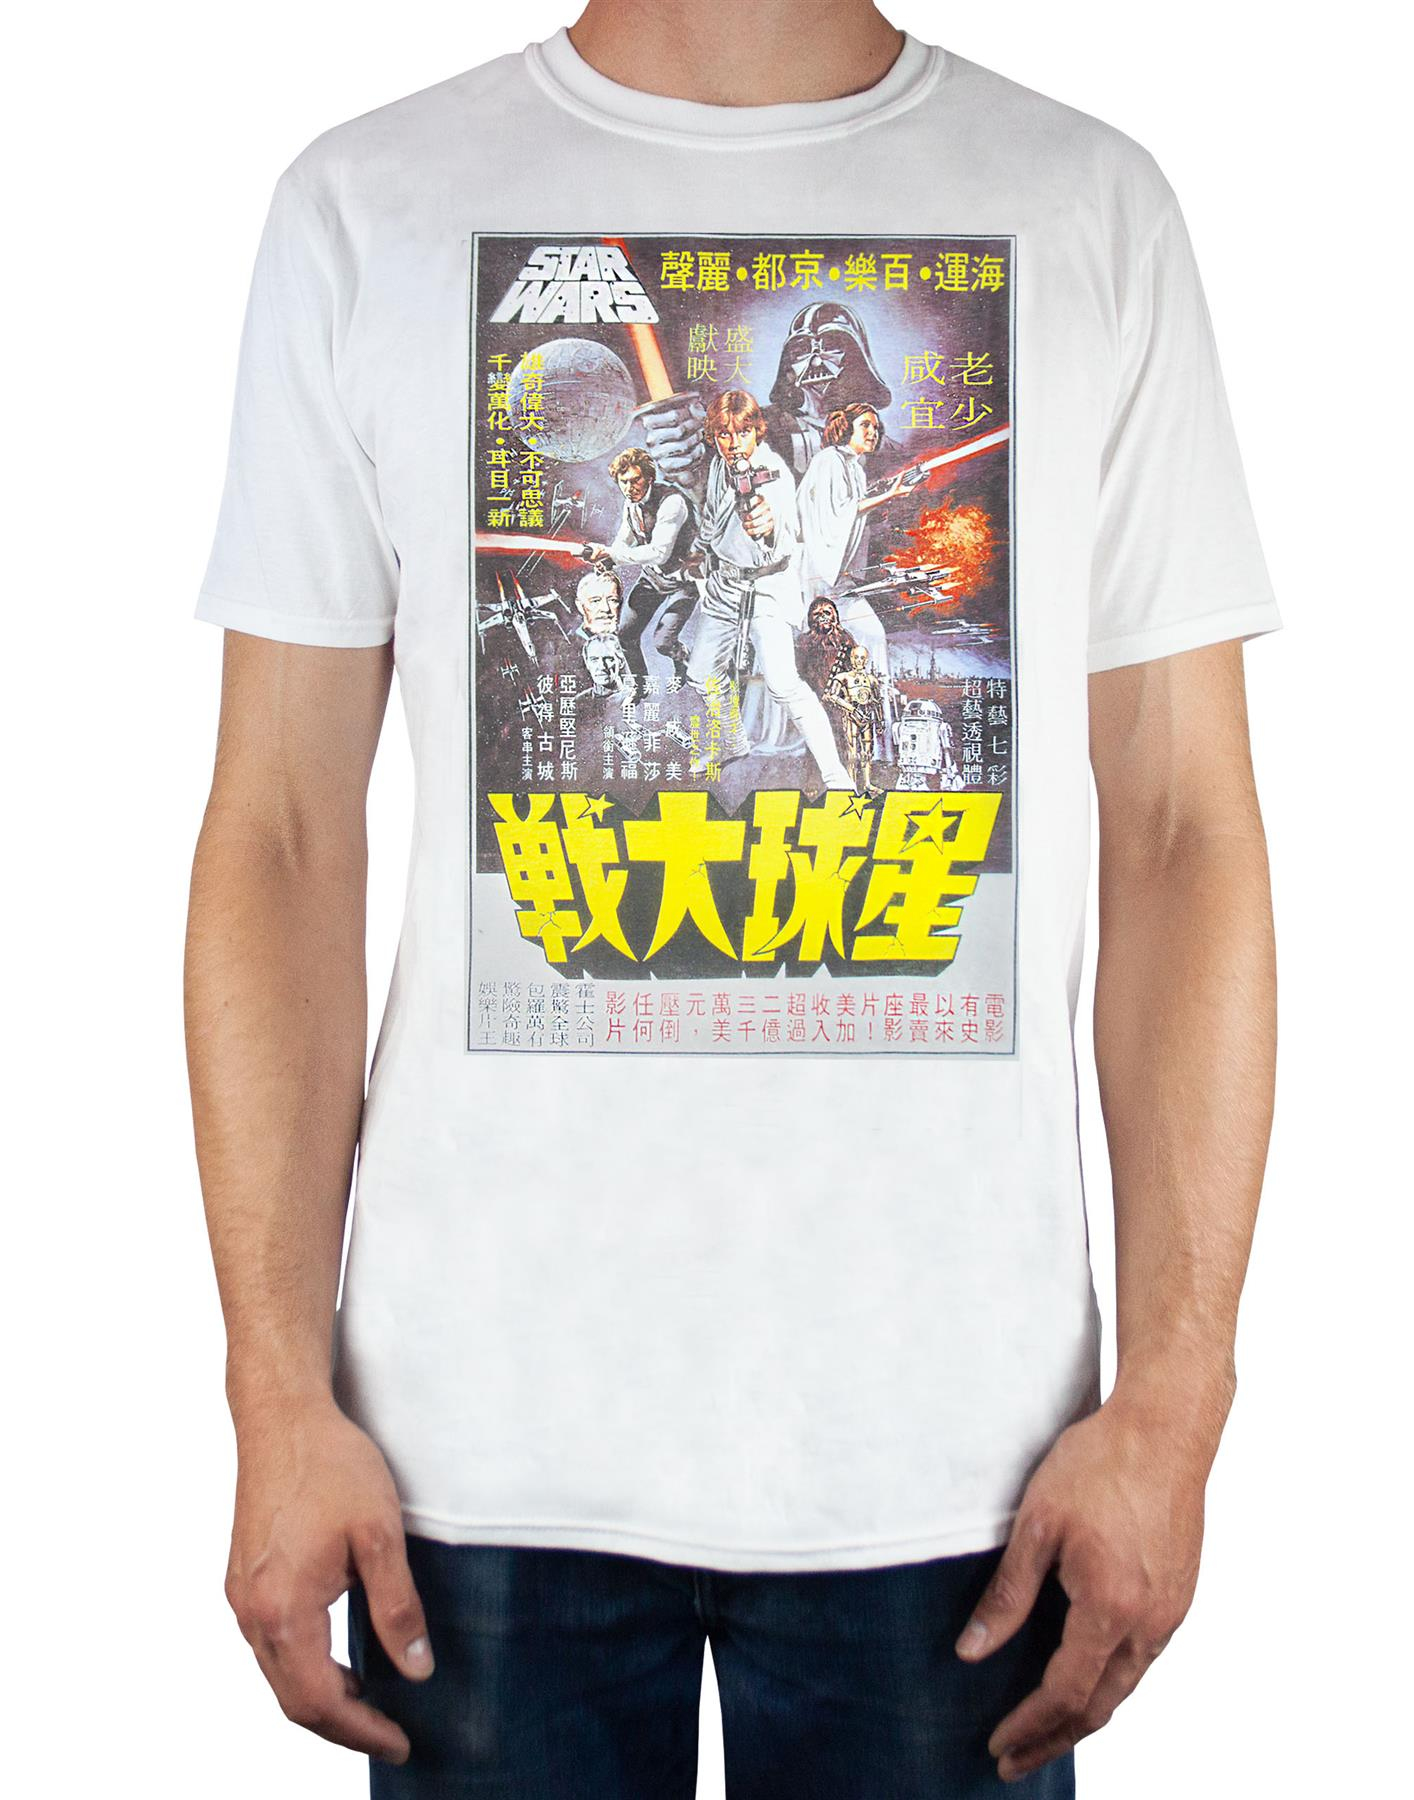 Star-Wars-A-New-Hope-Vintage-Japanese-Poster-Men-039-s-T-Shirt thumbnail 1